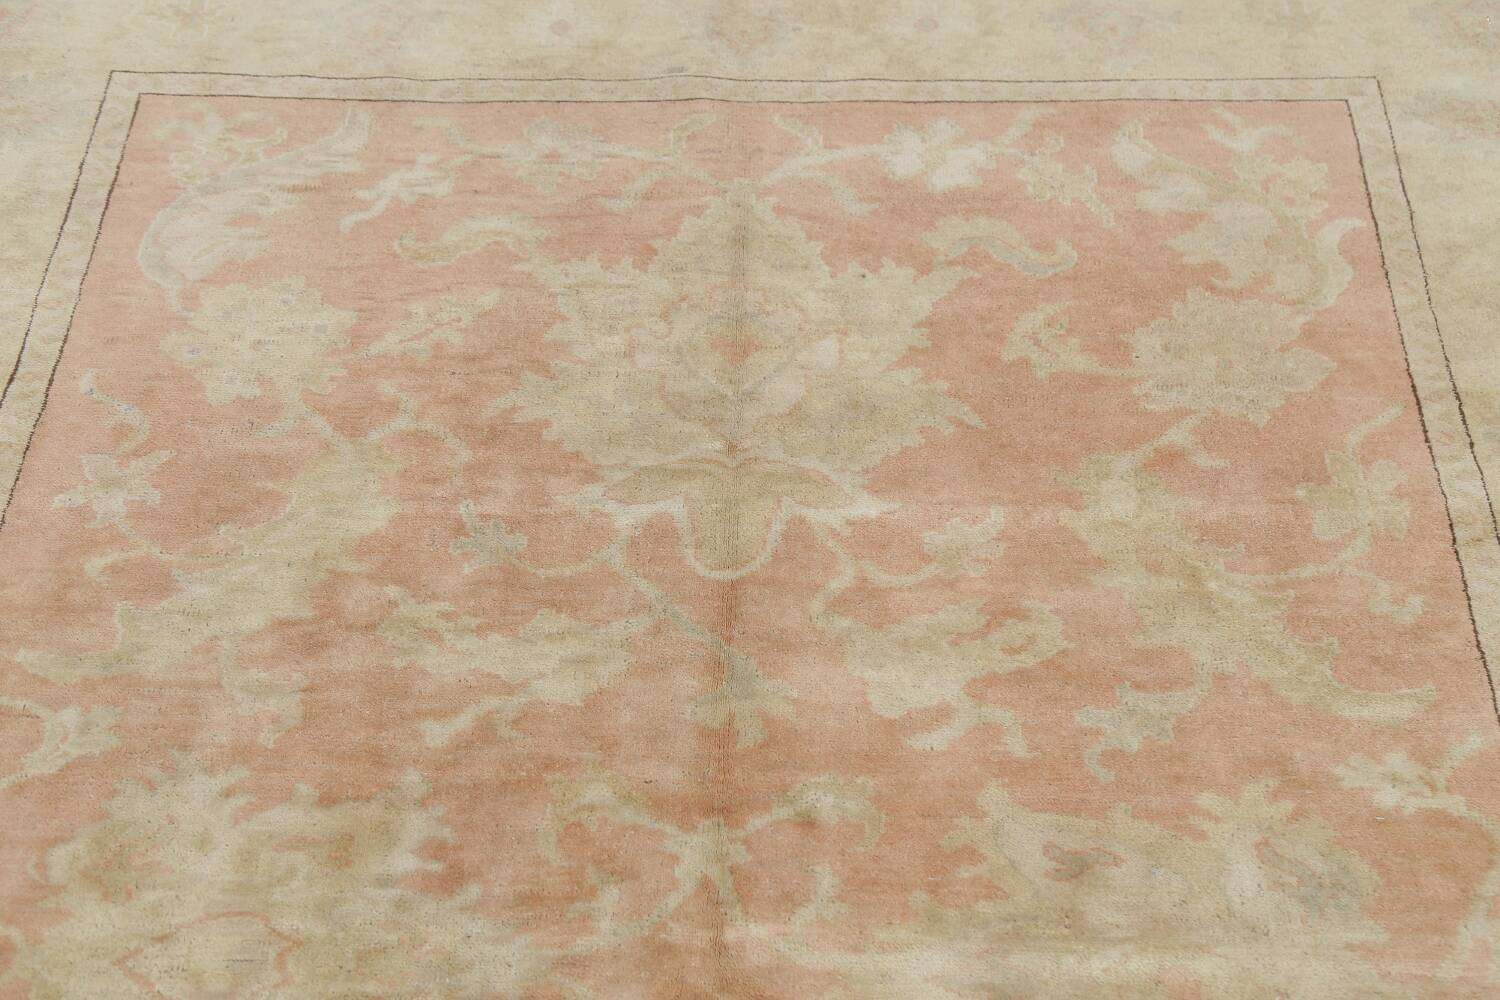 Vegetable Dye Antique Coral Peach Egyptian Area Rug 5x7 image 13